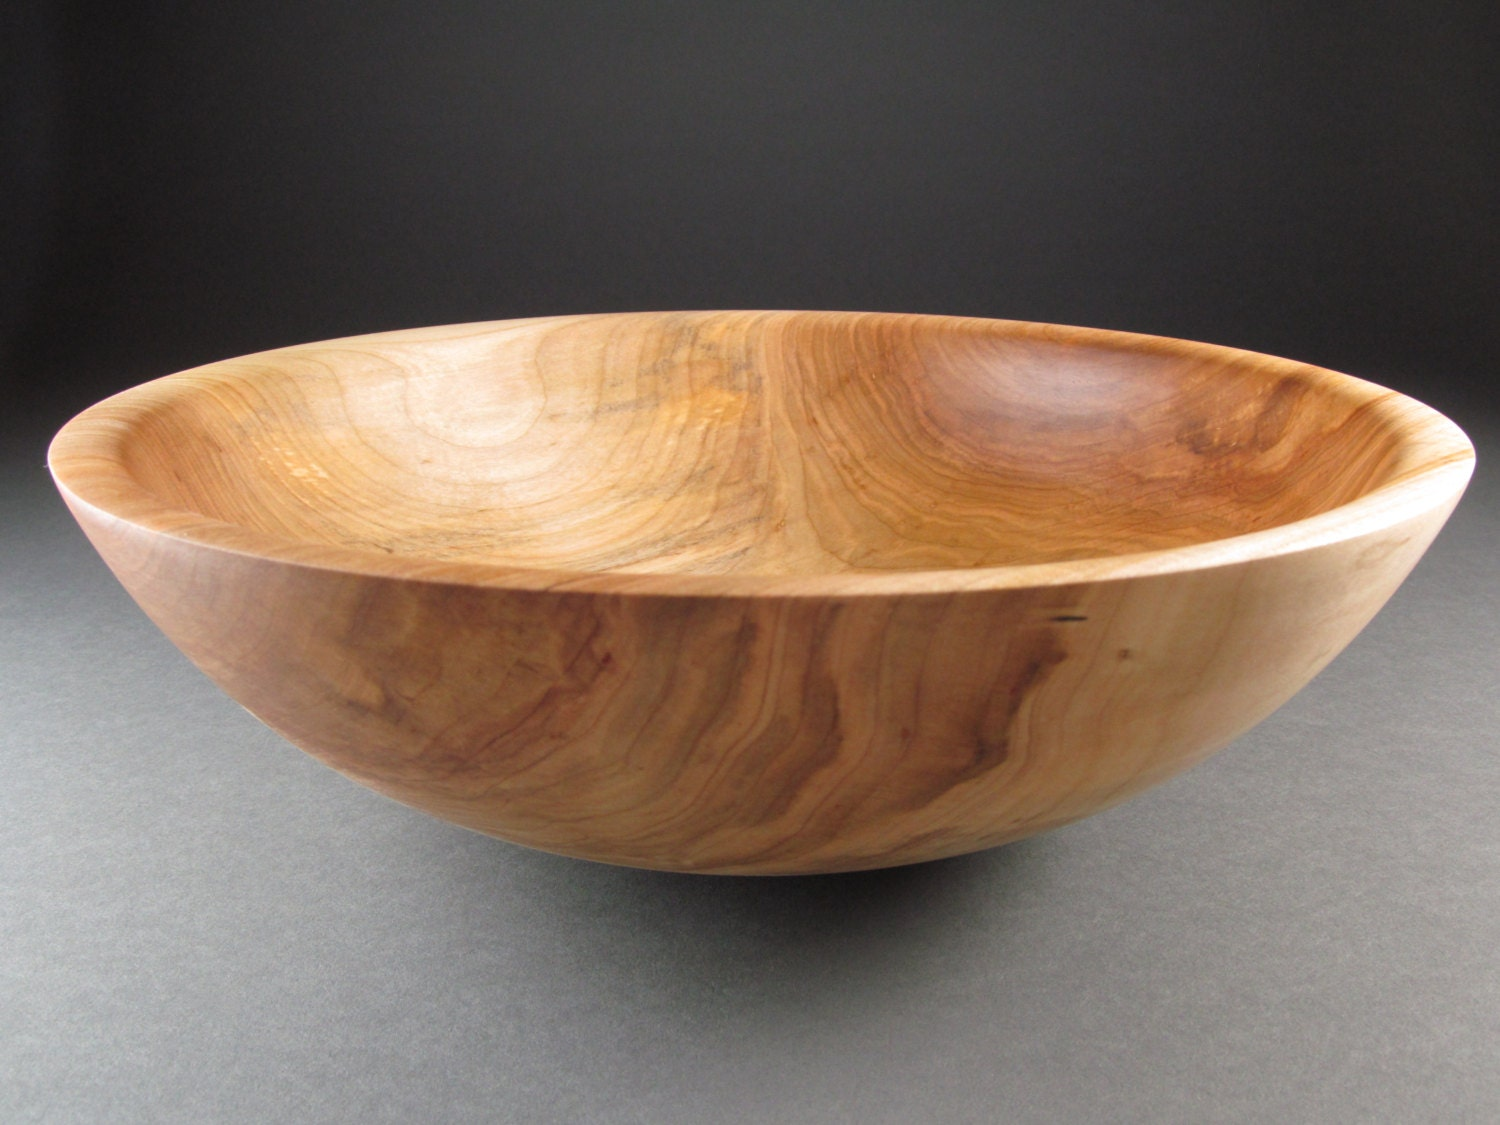 Wooden salad bowl handcrafted from minnesota maple